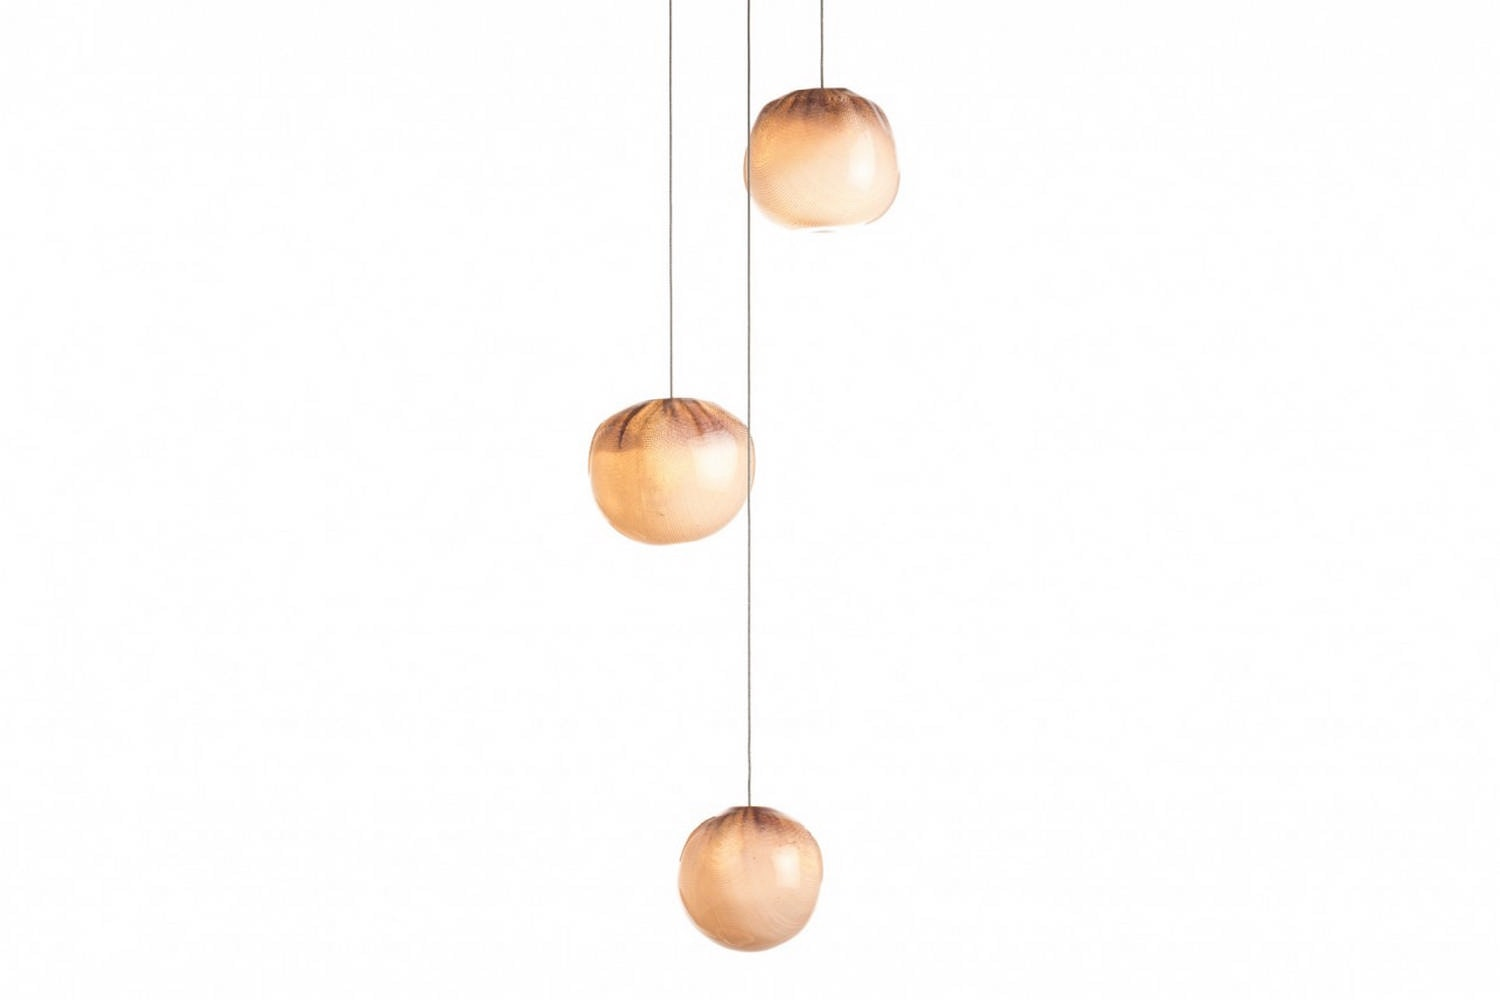 84.3 Suspension Lamp by Omer Arbel for Bocci